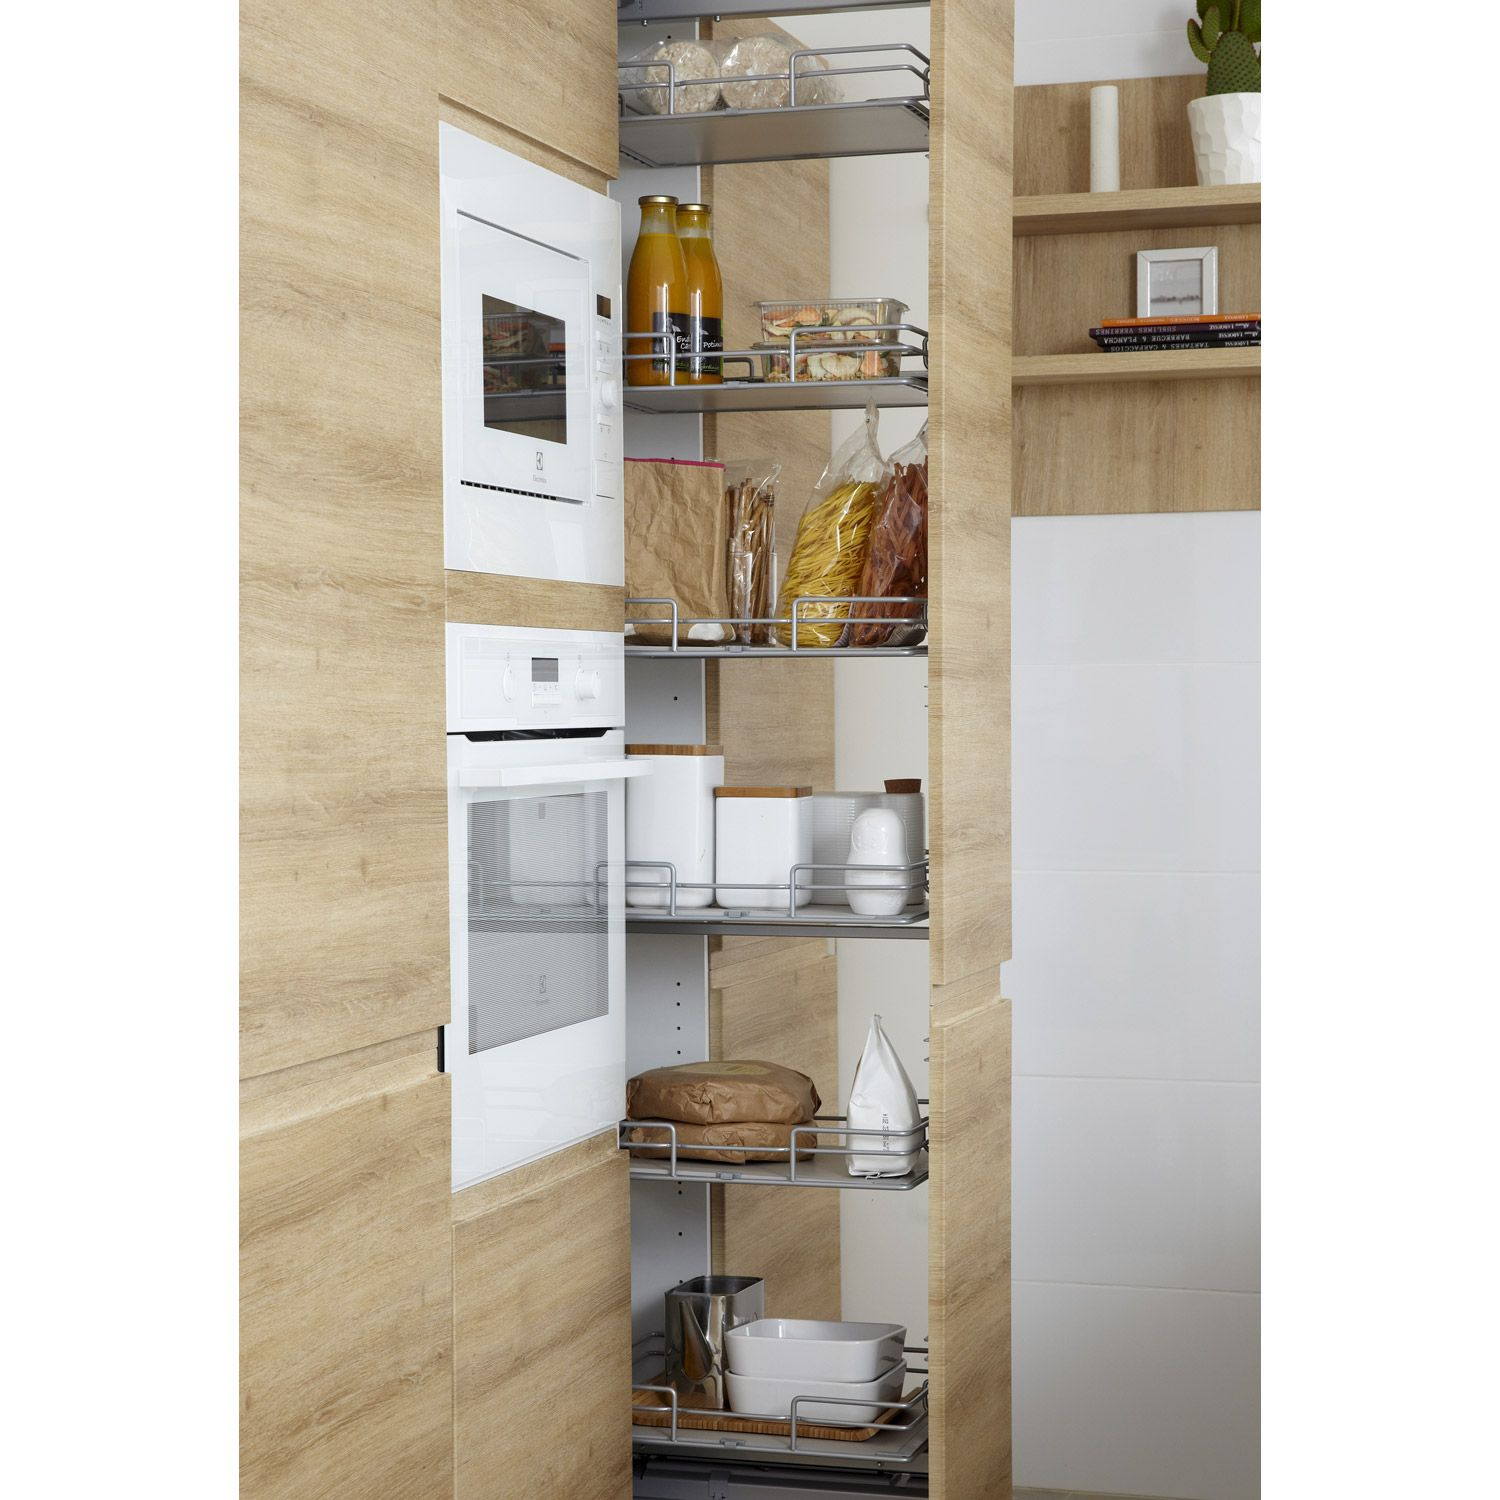 Kitchenette Leroy Merlin Kitchenettes Leroy Merlin Oveetech